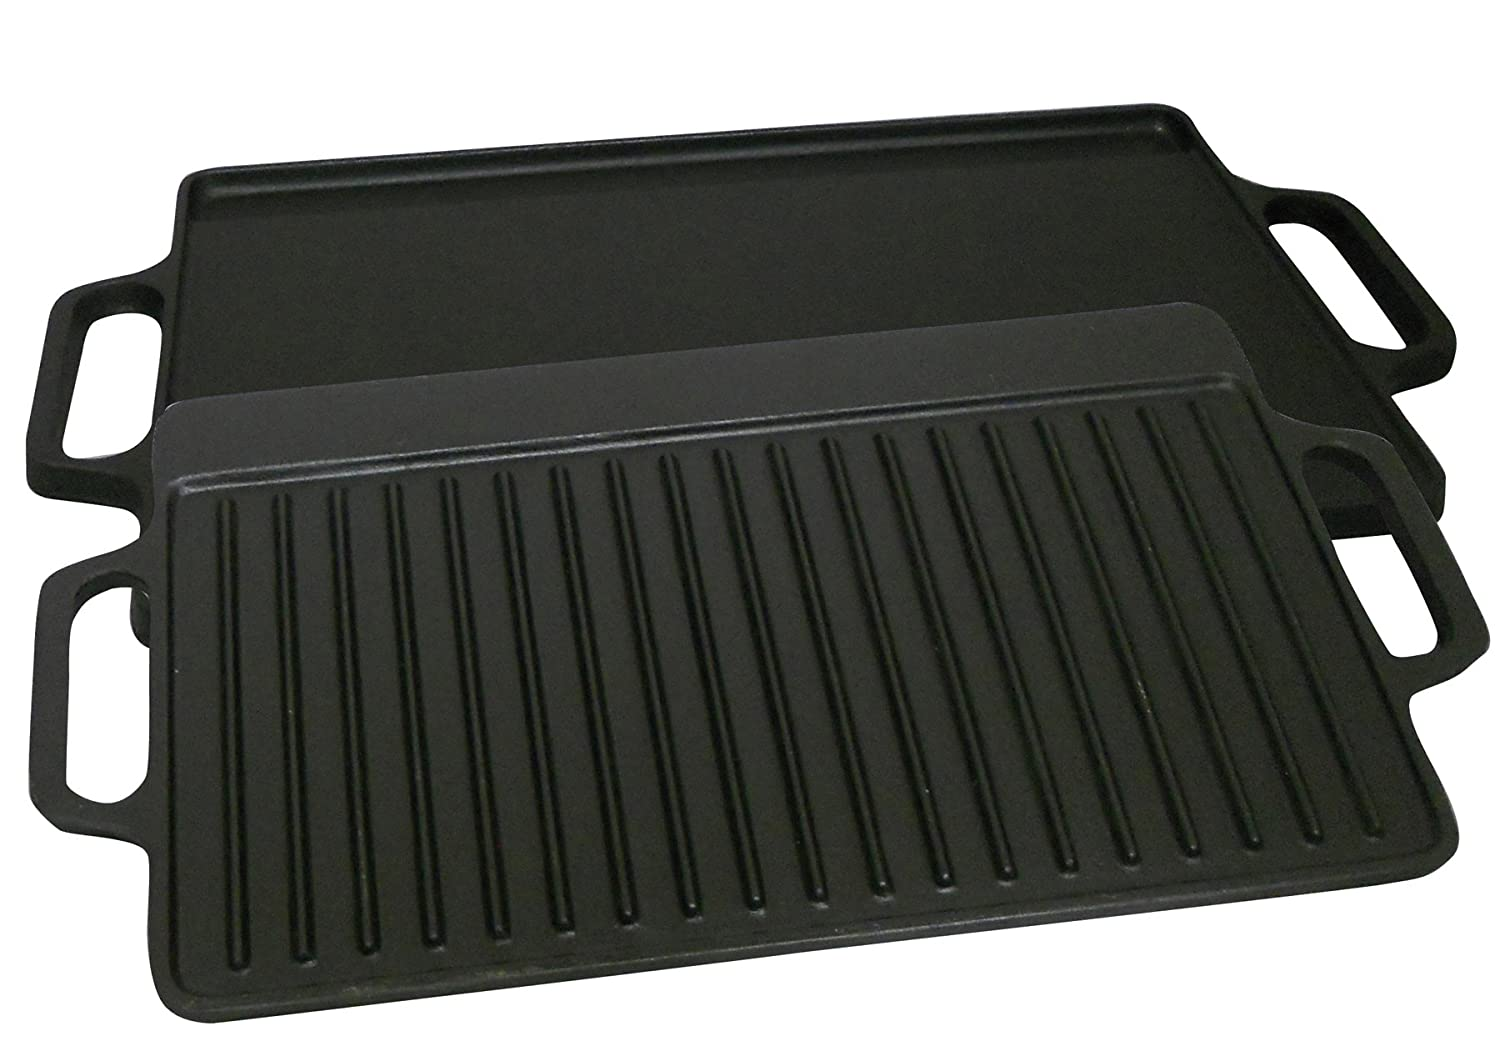 King Kooker CI28GS Pre-seasoned Cast Iron 2 Sided Griddle, 28-Inch (Discontinued by Manufacturer)